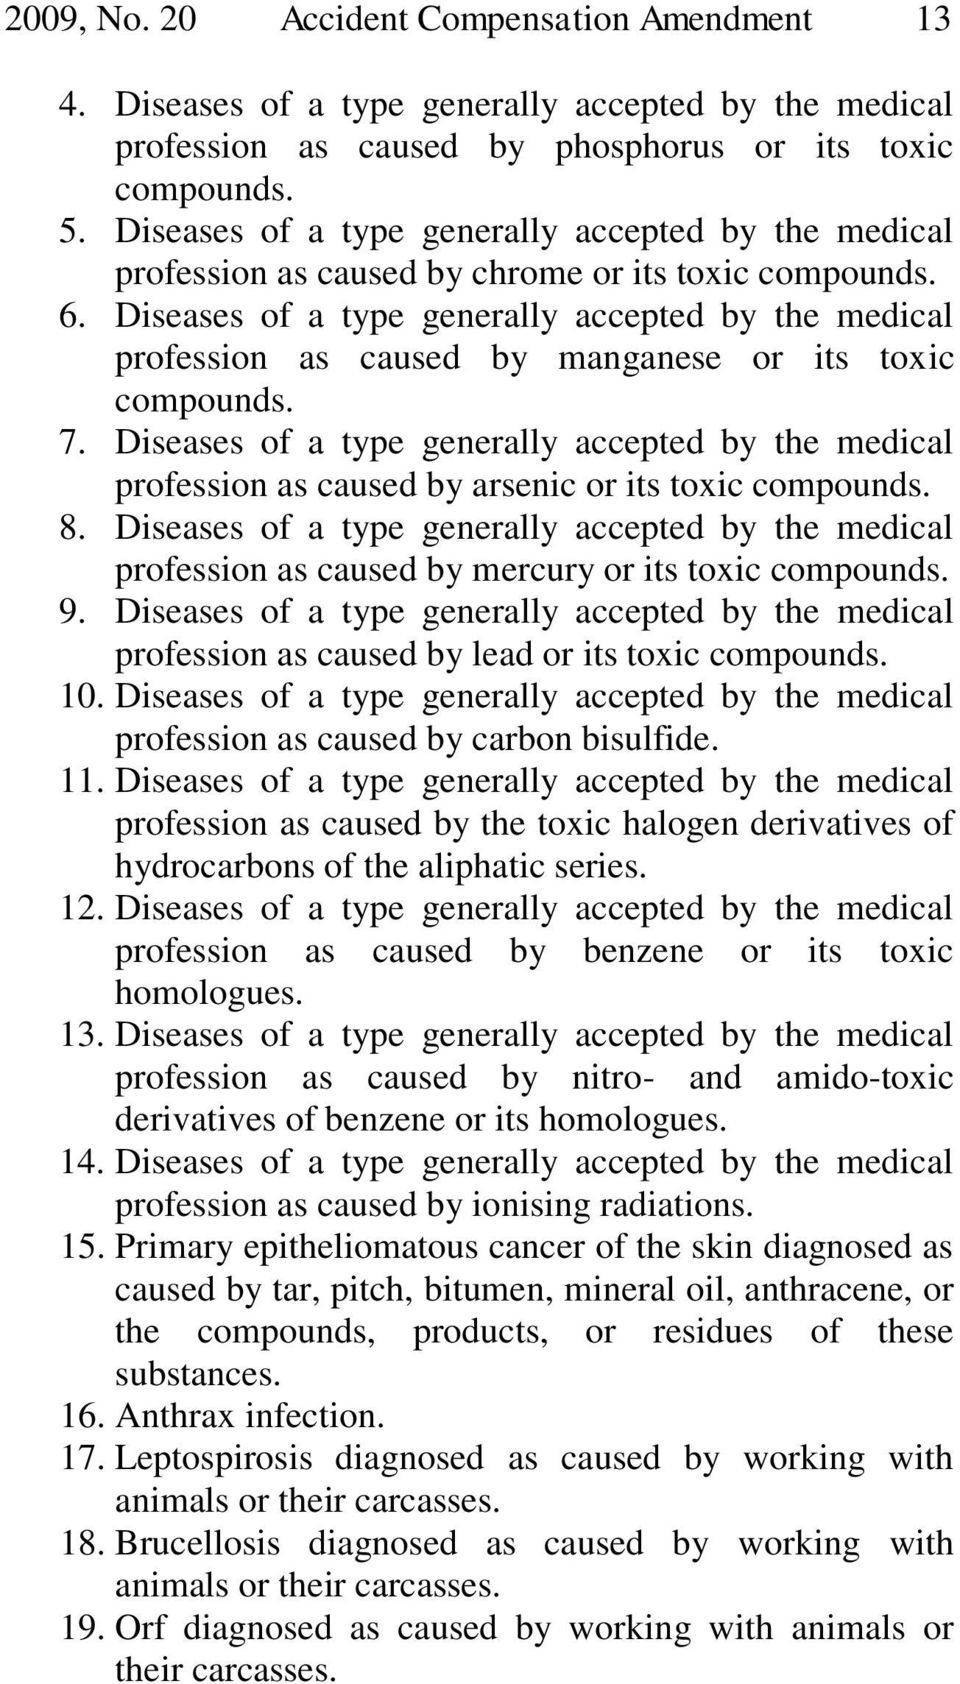 Diseases of a type generally accepted by the medical profession as caused by manganese or its toxic compounds. 7.